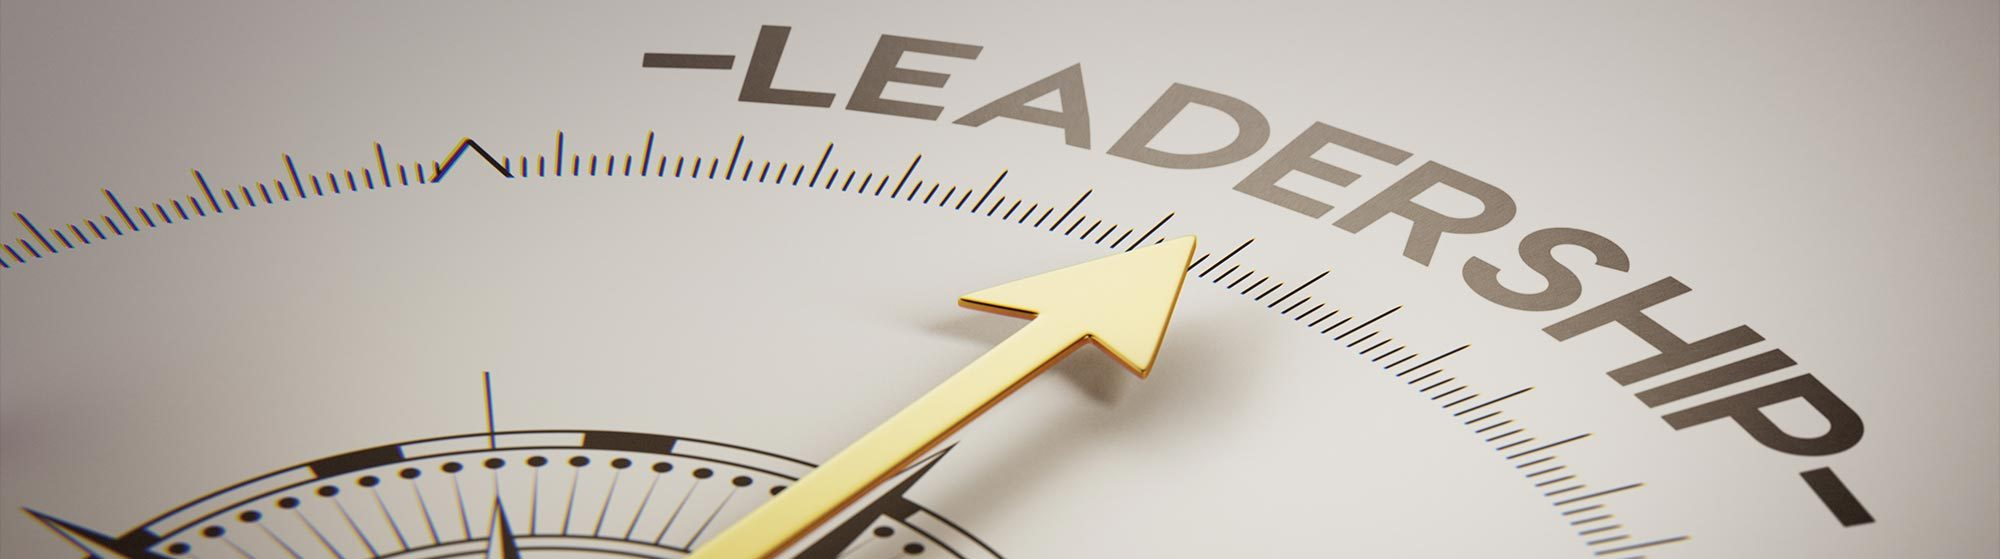 Clock pointing to the word leadership